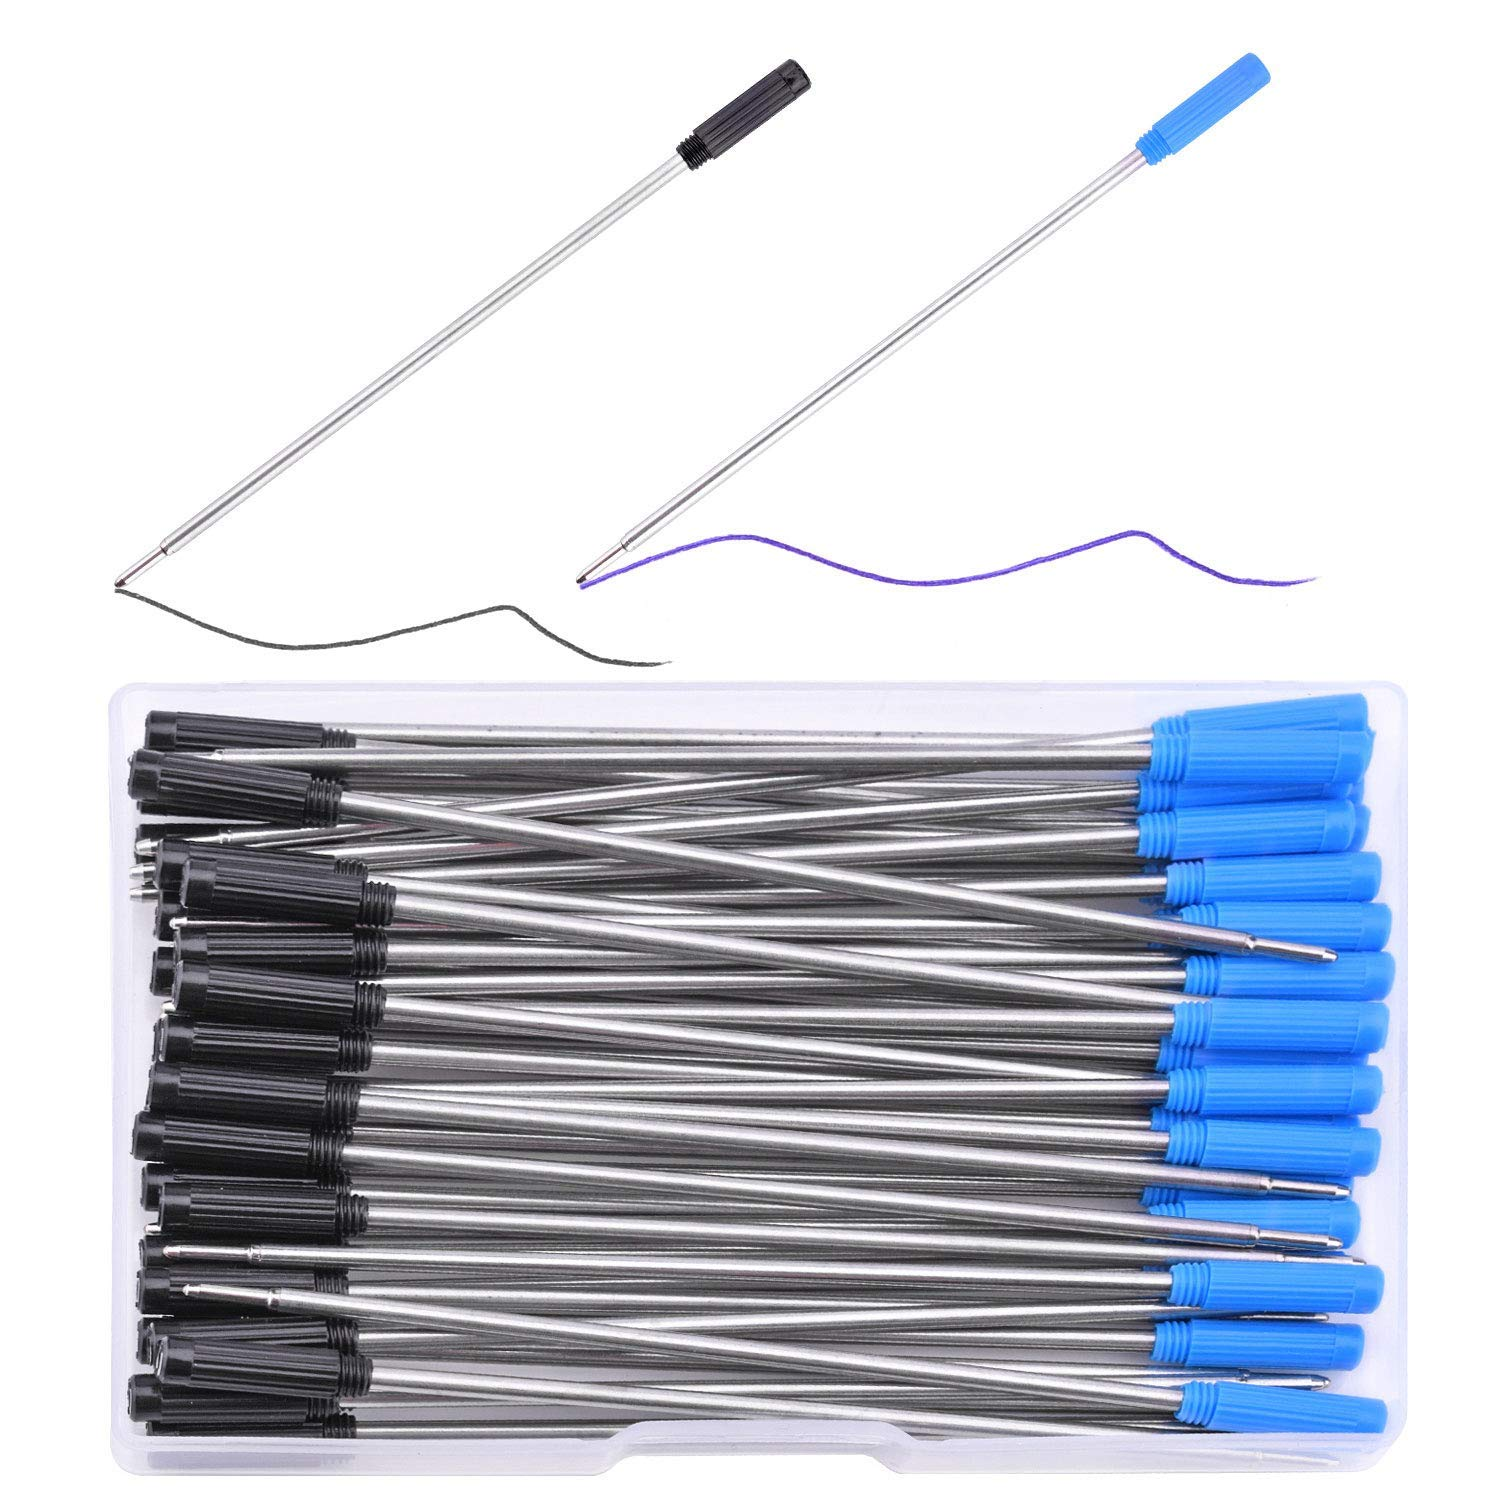 WXJ13 25 Pack 4.6 Inch Black Ink and 25 Pack Blue Ink Ballpoint Pen Refills with Plastic Storage Case, Black and Blue Ink